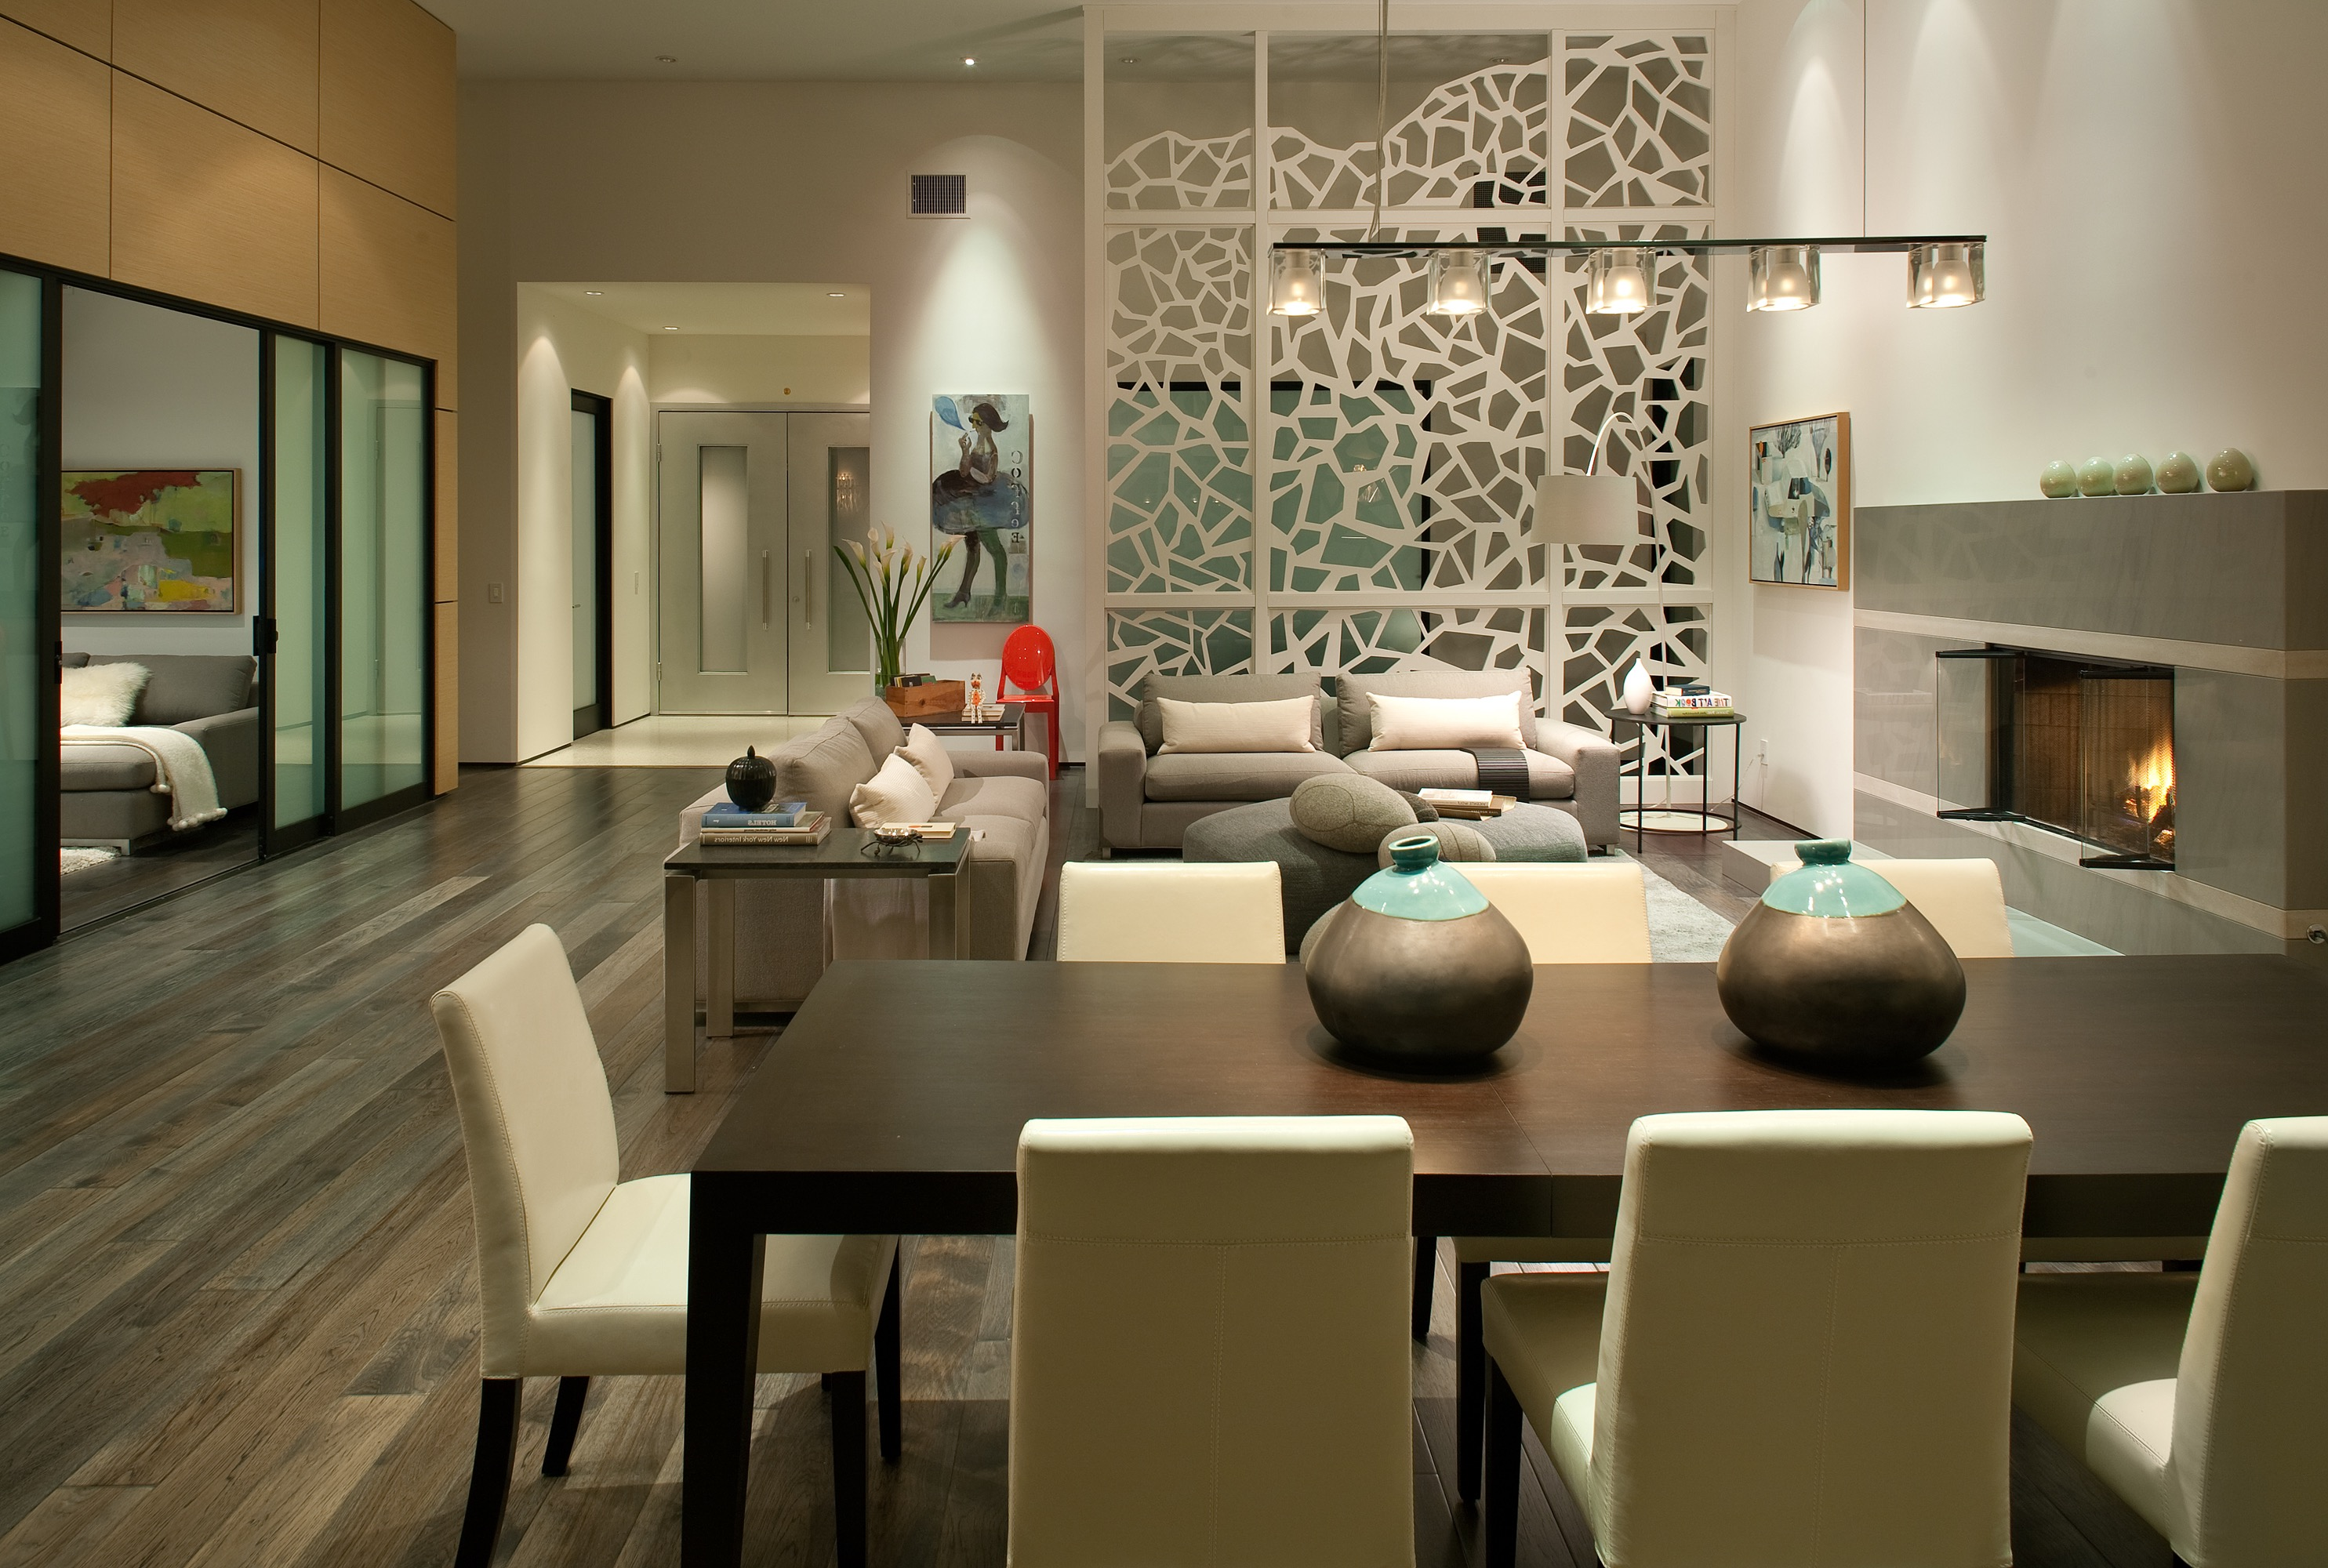 Contemporary White Divider For Dining Room And Living Room (View 2 of 14)